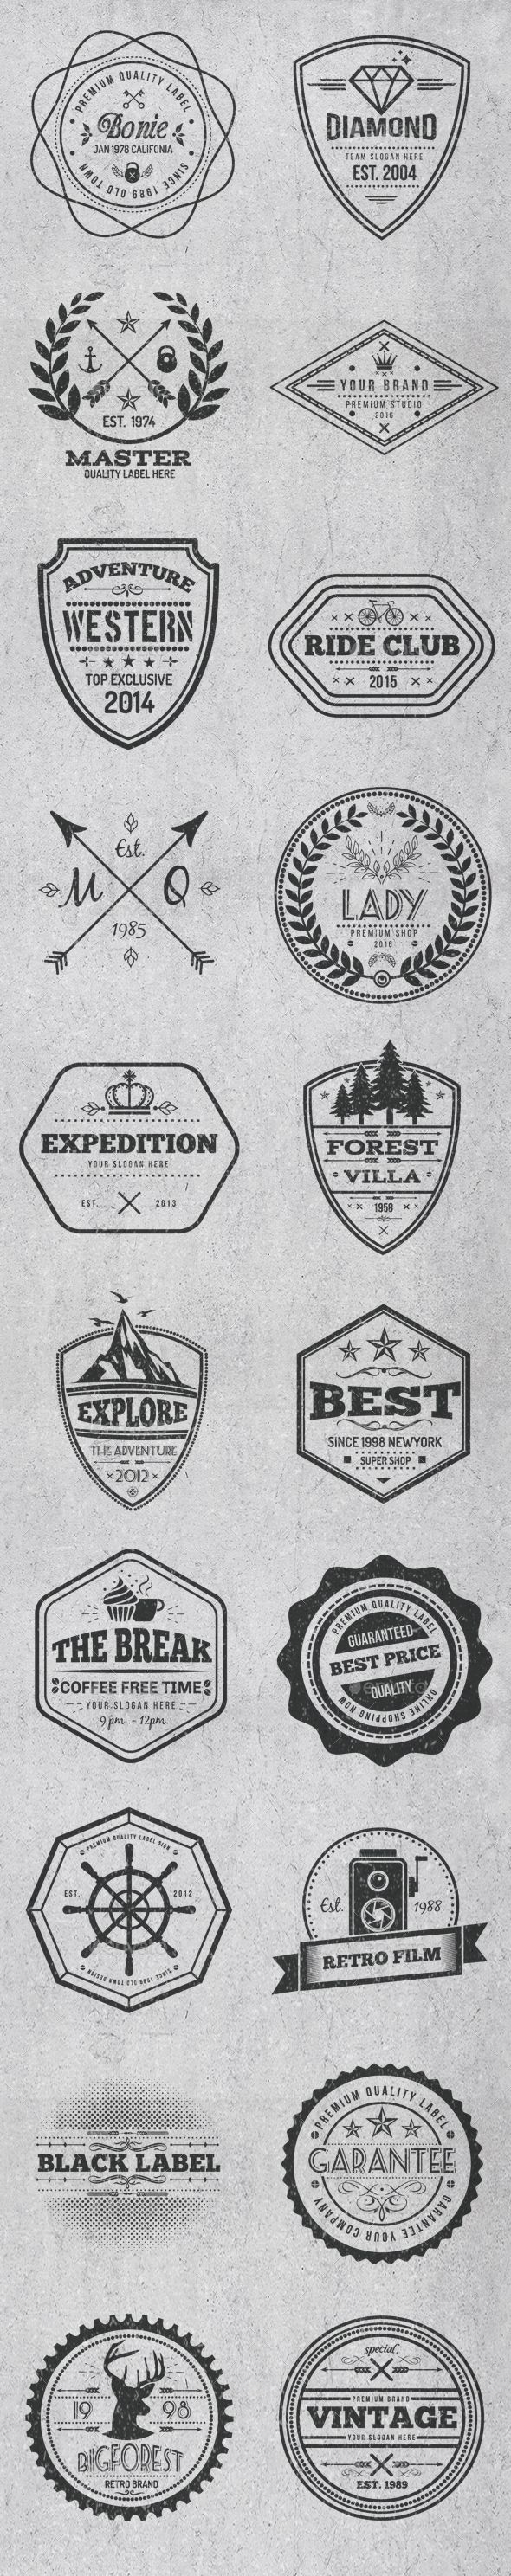 Vintage Style Badges and Logos Template Vector EPS, AI Illustrator. Download here: https://graphicriver.net/item/vintage-style-badges-and-logos-vol-3/17474371?ref=ksioks